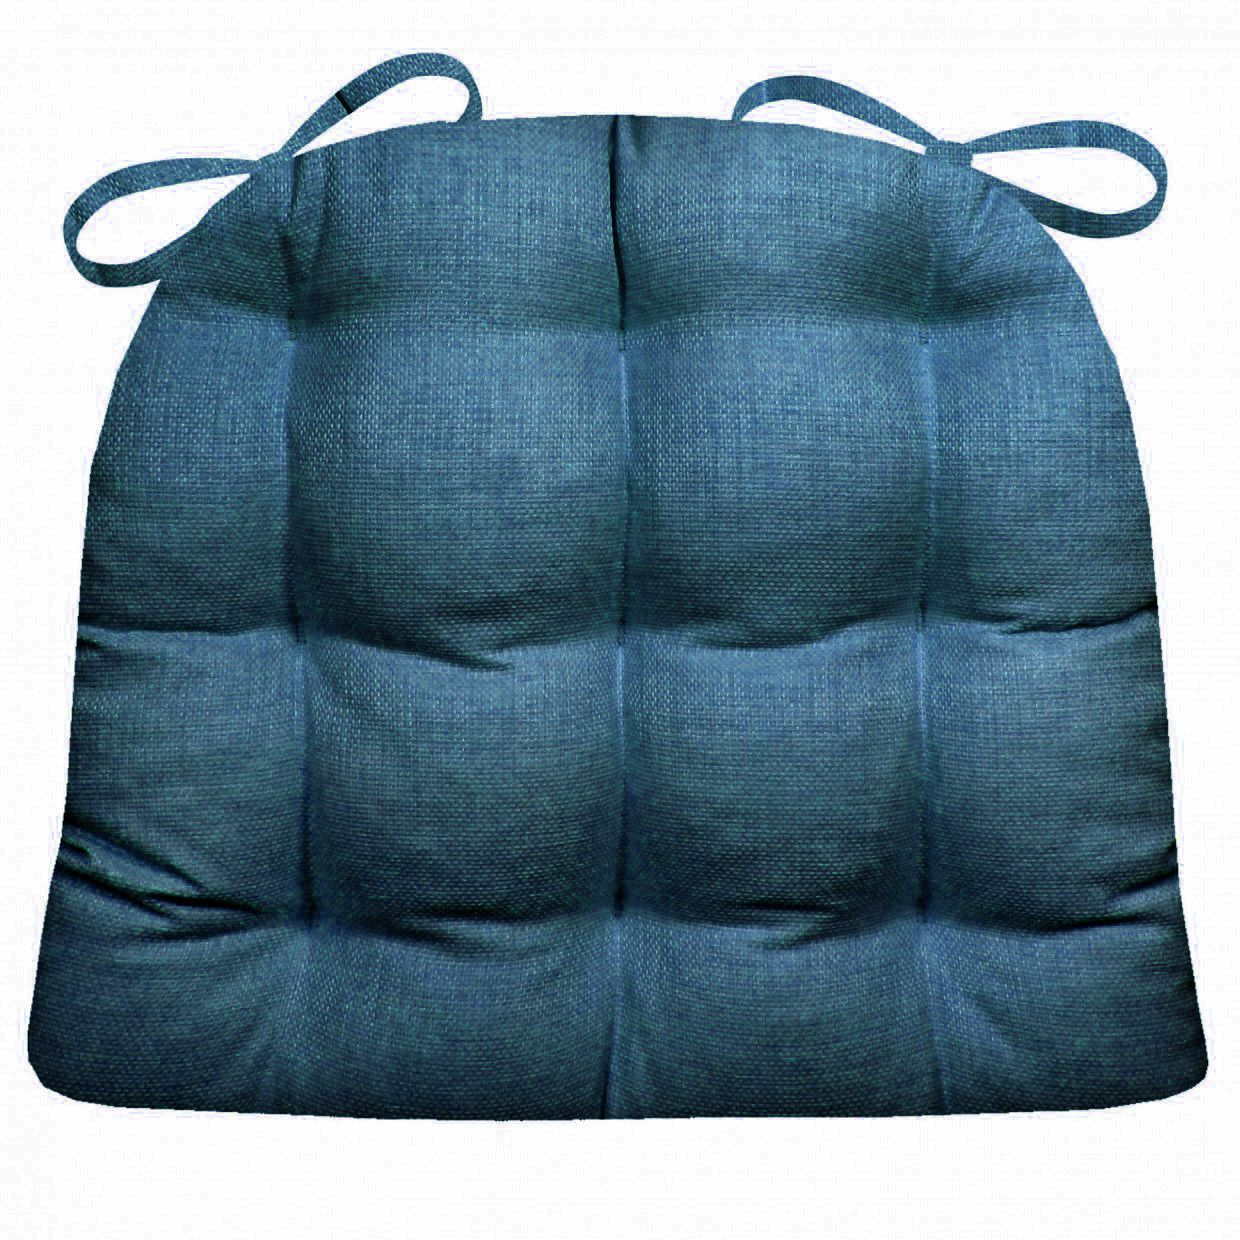 Indoor / Outdoor Dining Chair Pad   Rave Indigo Blue Solid Color Woven  Fabric     Mildew Resistant, Fade Resistant Small Patio Chair Cushion    Reversible, ...